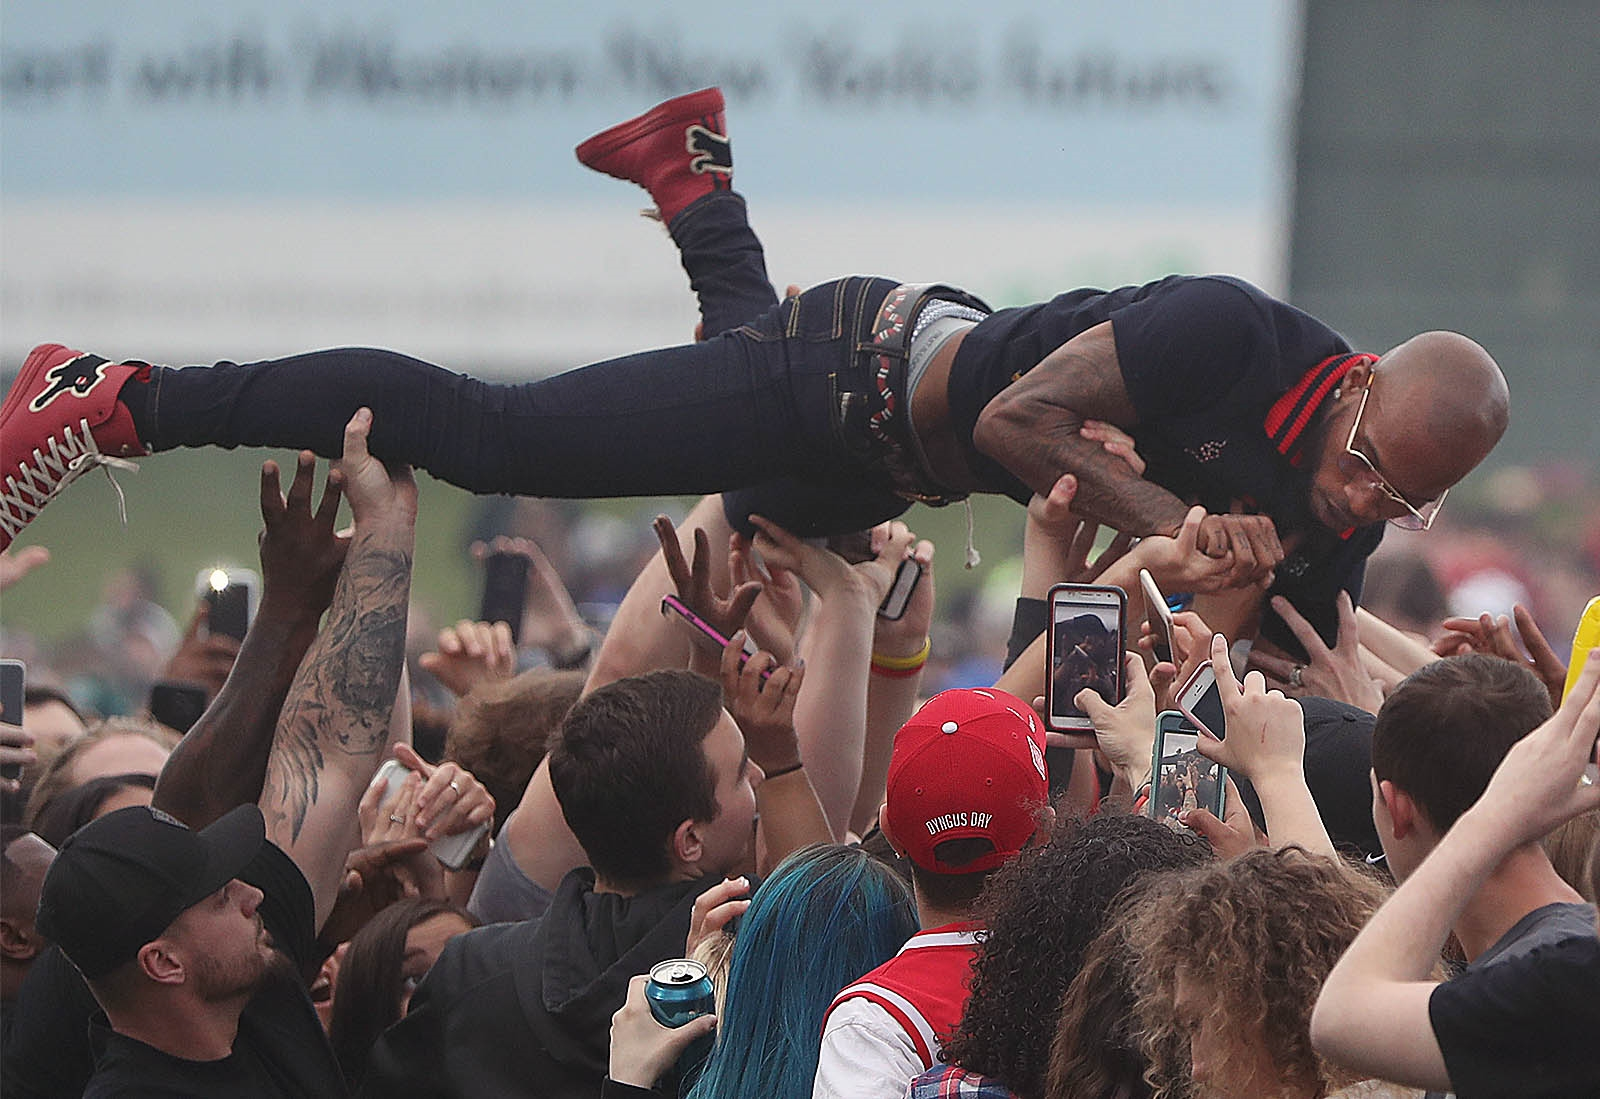 Future kicked off the Darien Lake concert season last week. Here, Tory Lanez crowd-surfs with the fans on the lawn during the performance.